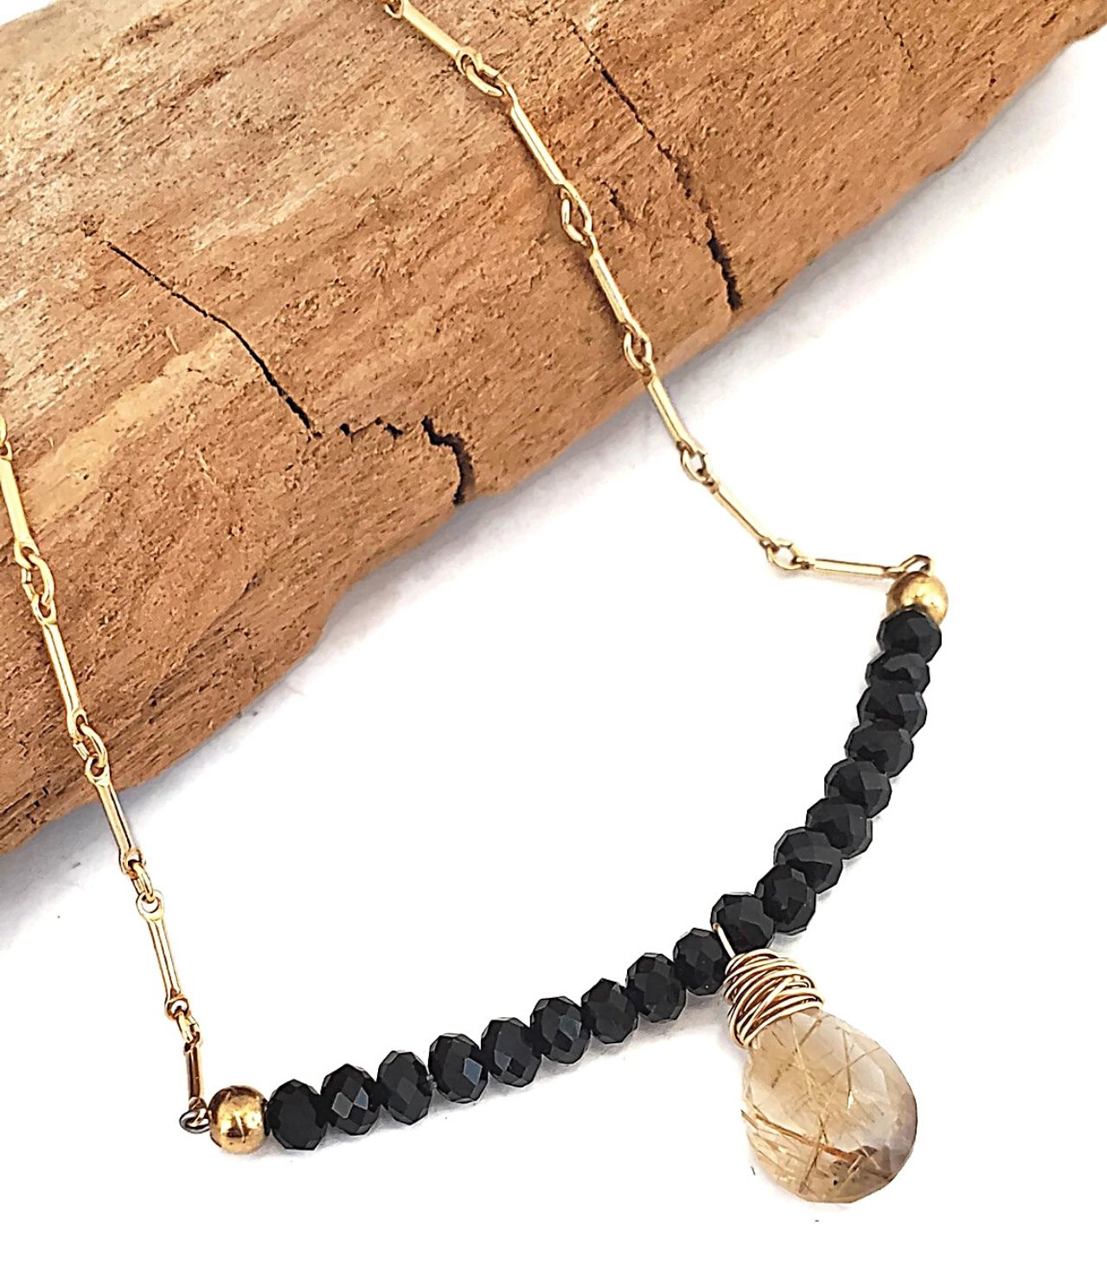 rutialted quartz gold chain necklace on wood